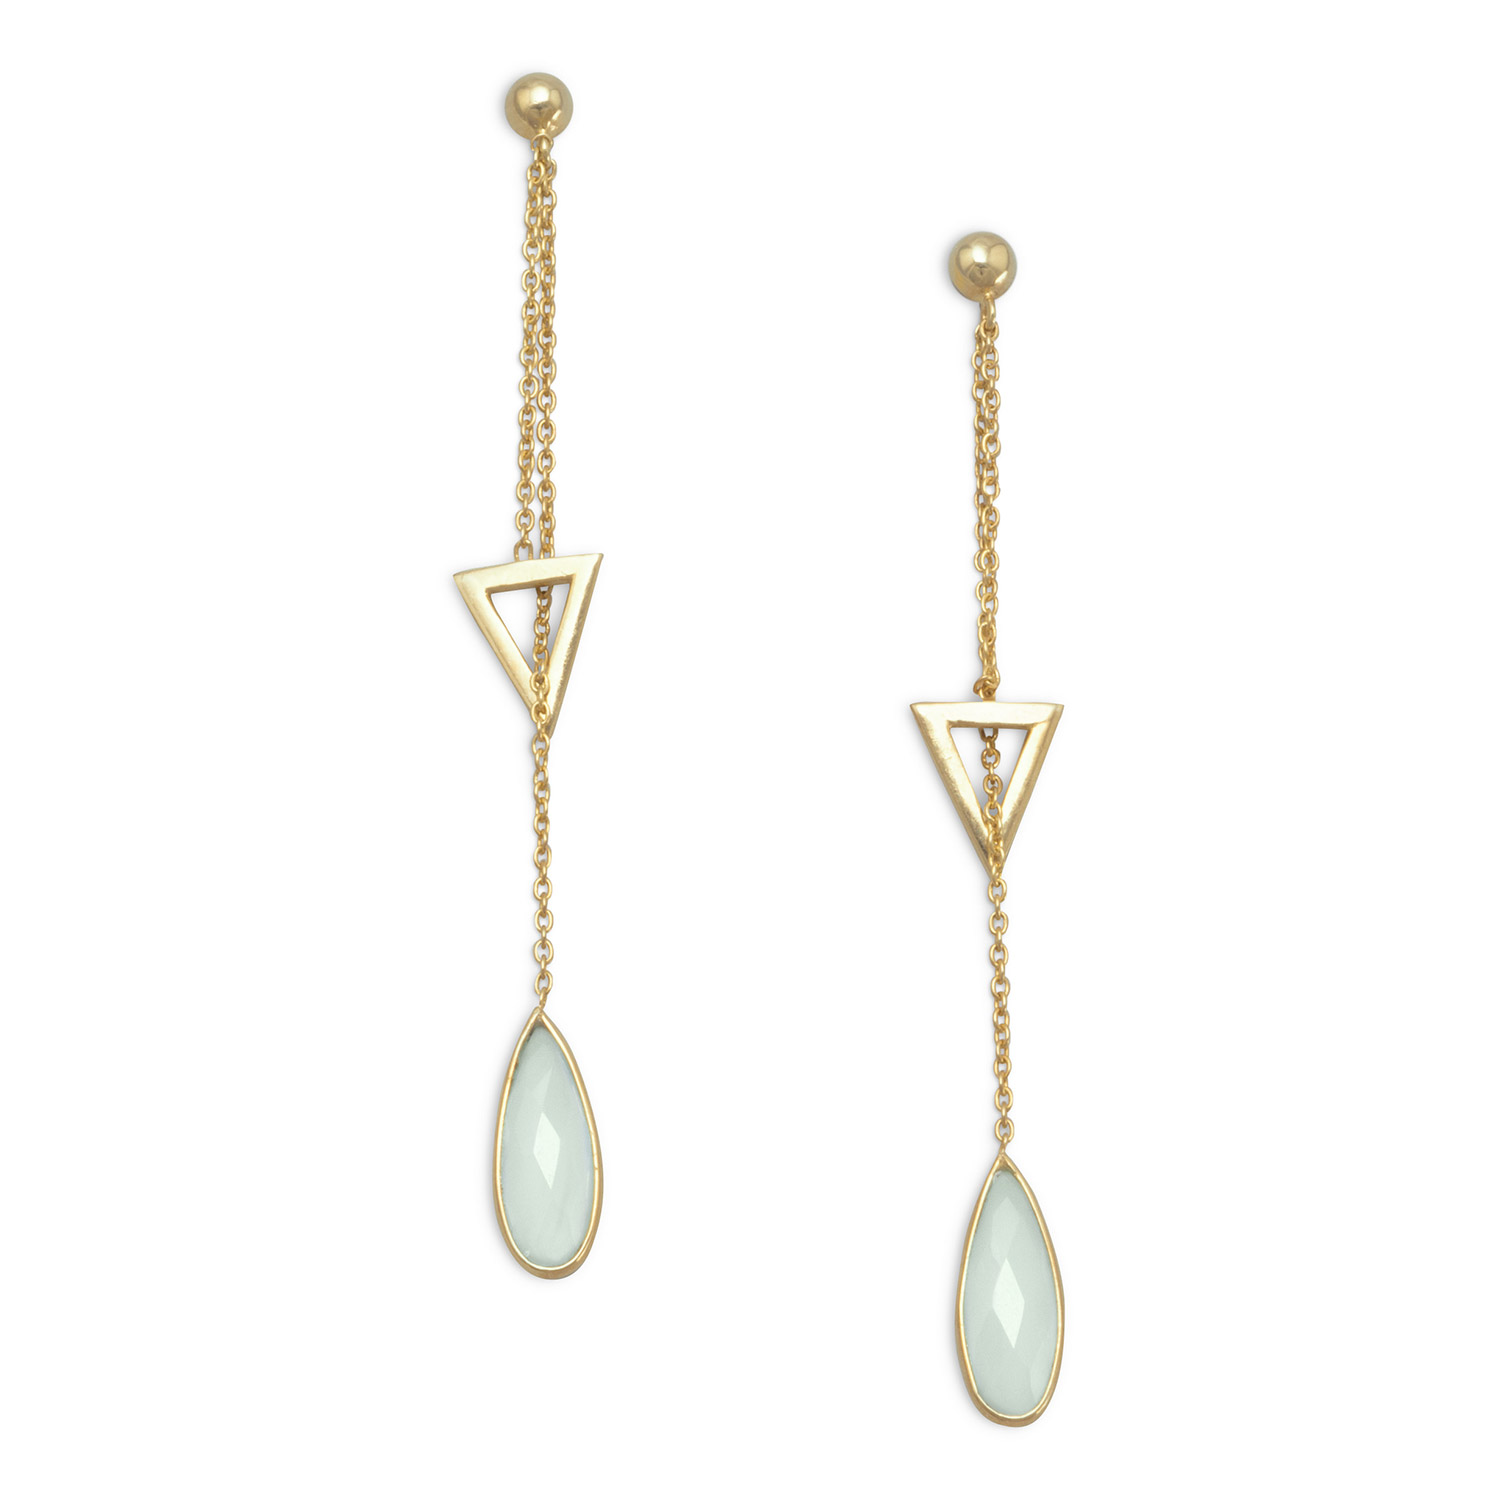 Gold-Flashed Sterling Silver Lariat Style Drop Post Back Earrings Faceted Chalcedony by